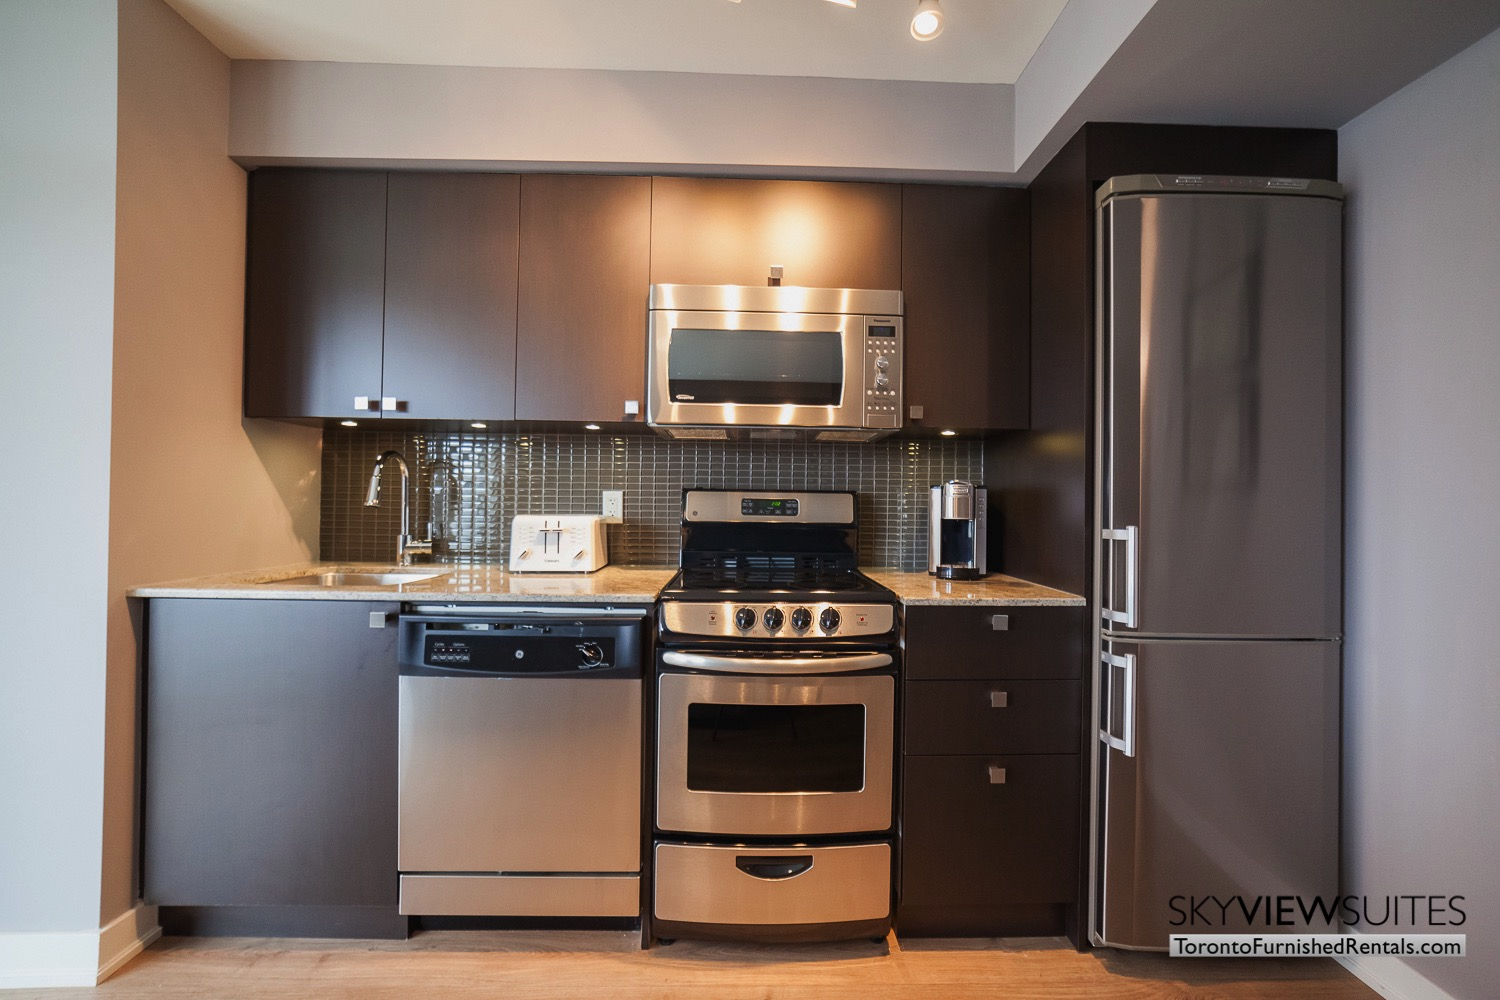 kitchen in King west corporate rentals toronto